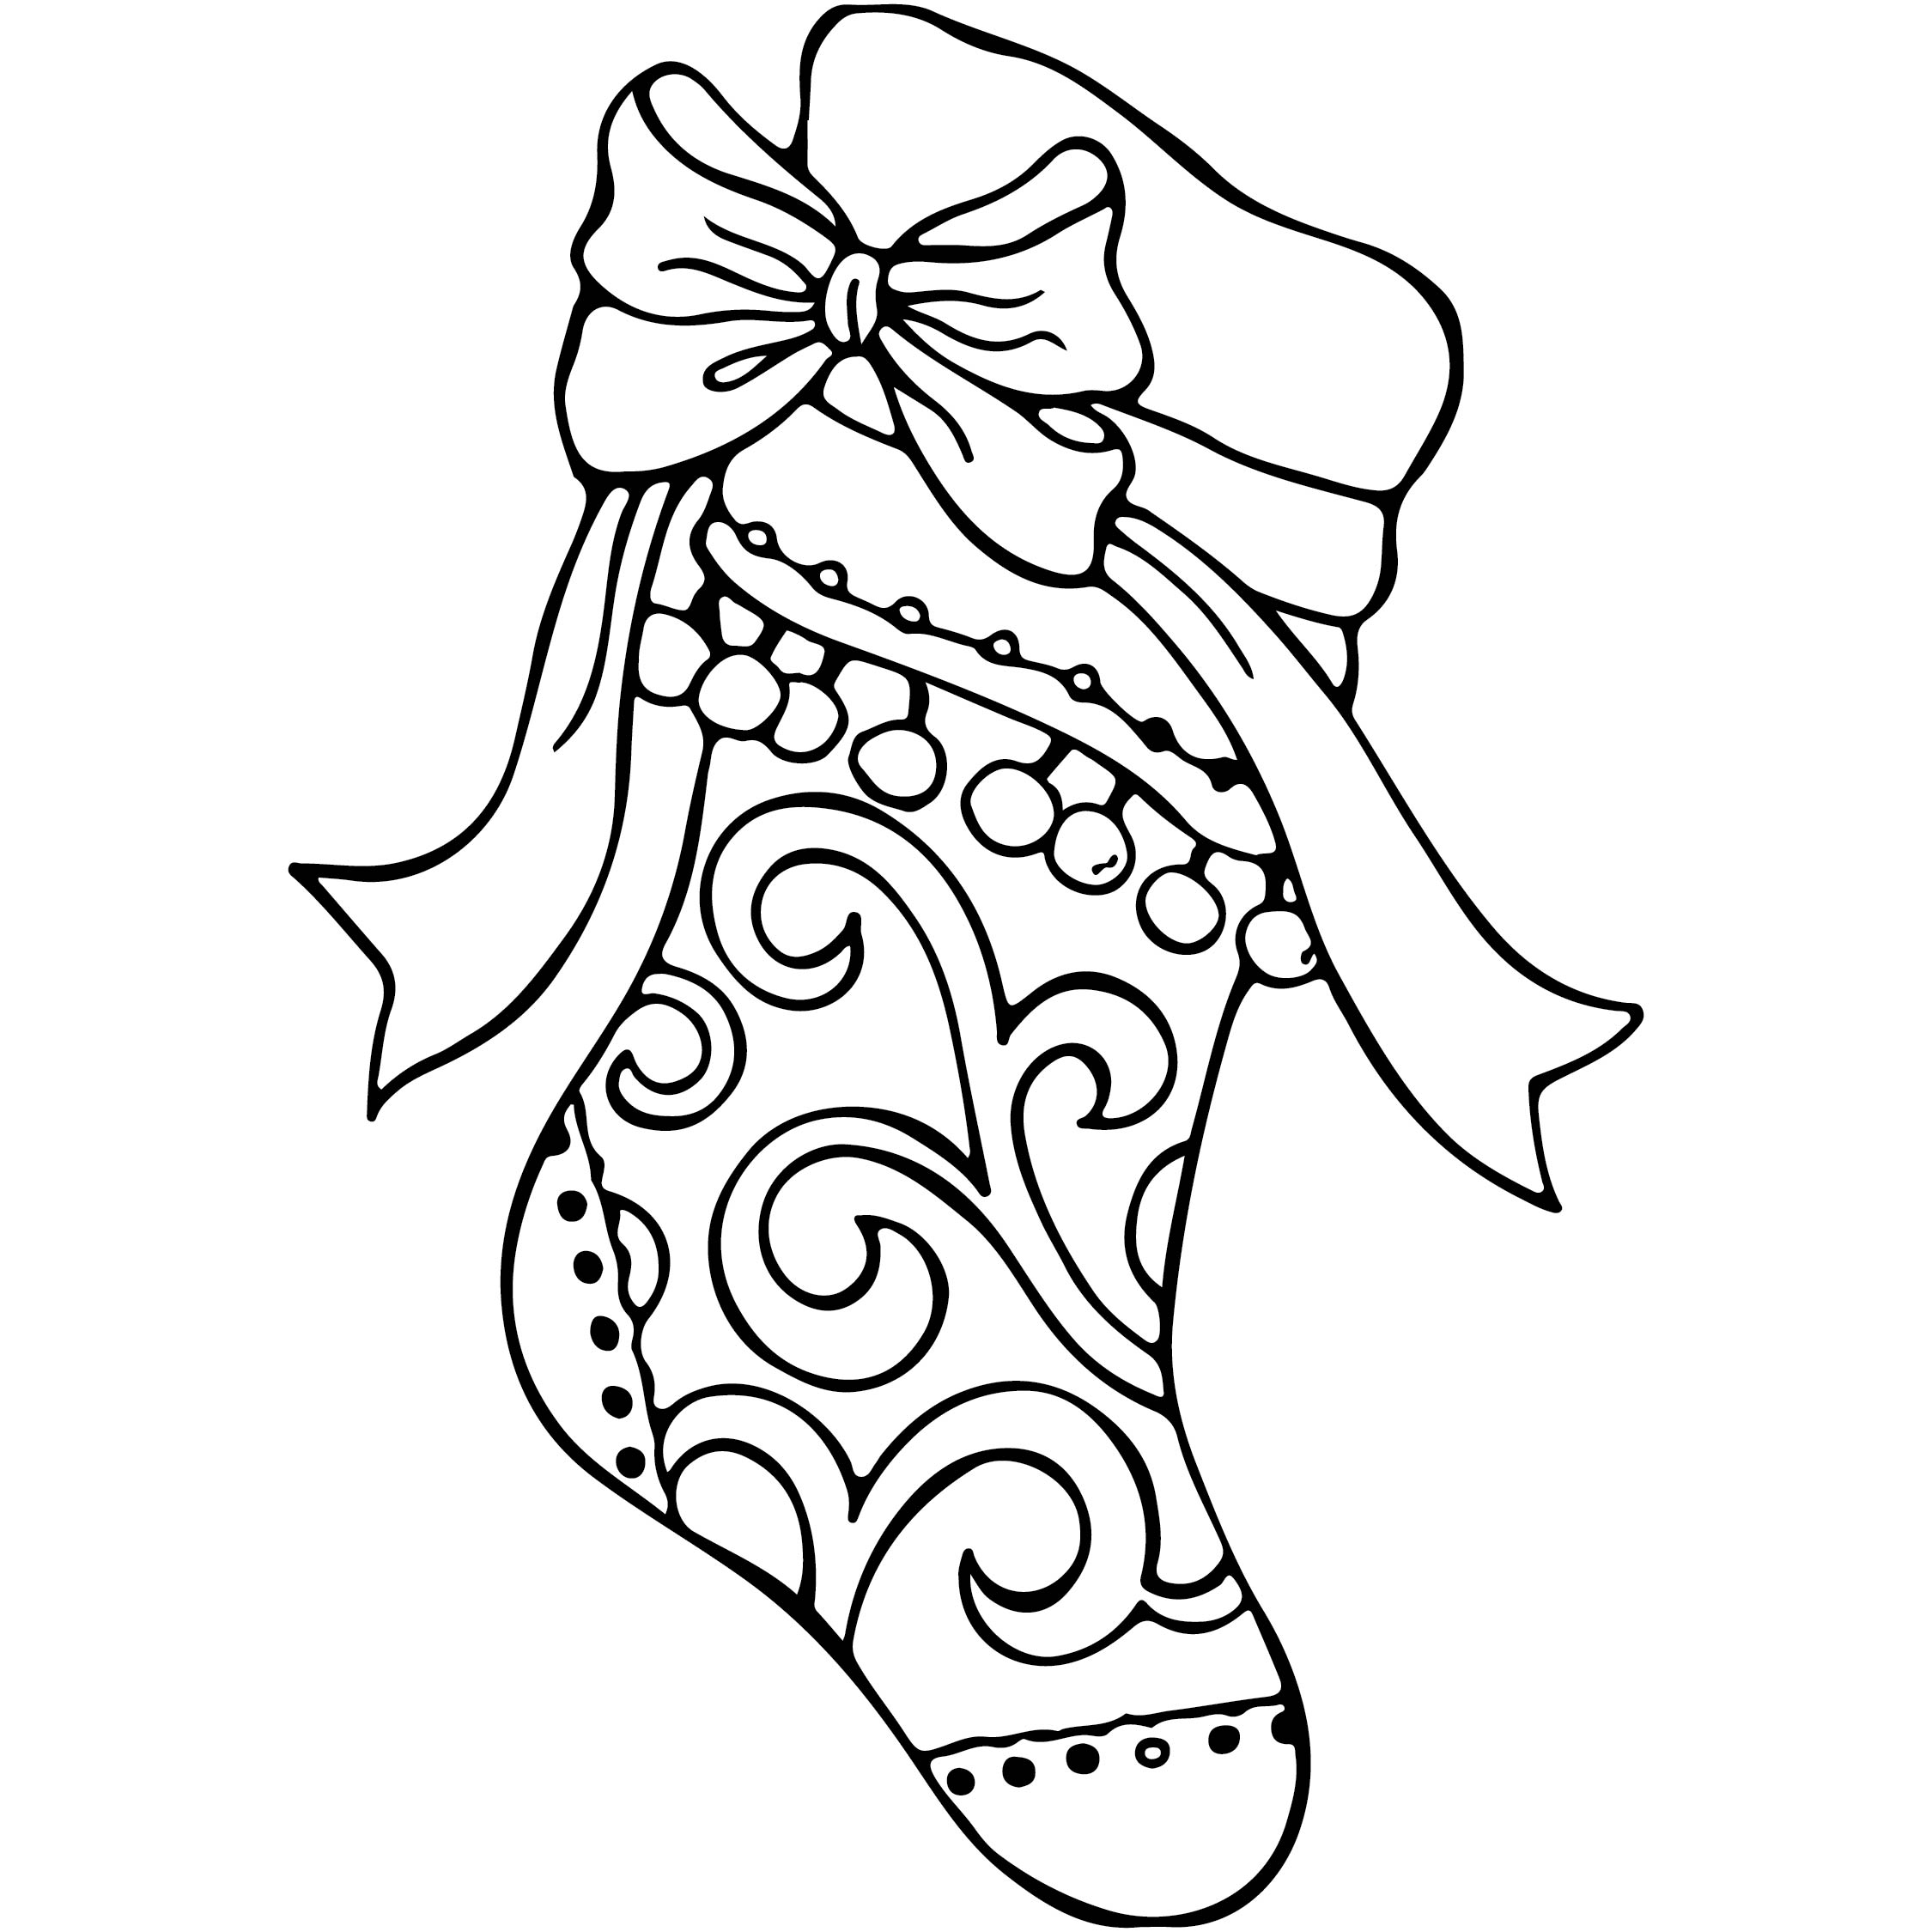 6 Best Images Of Christmas Stocking Coloring Pages